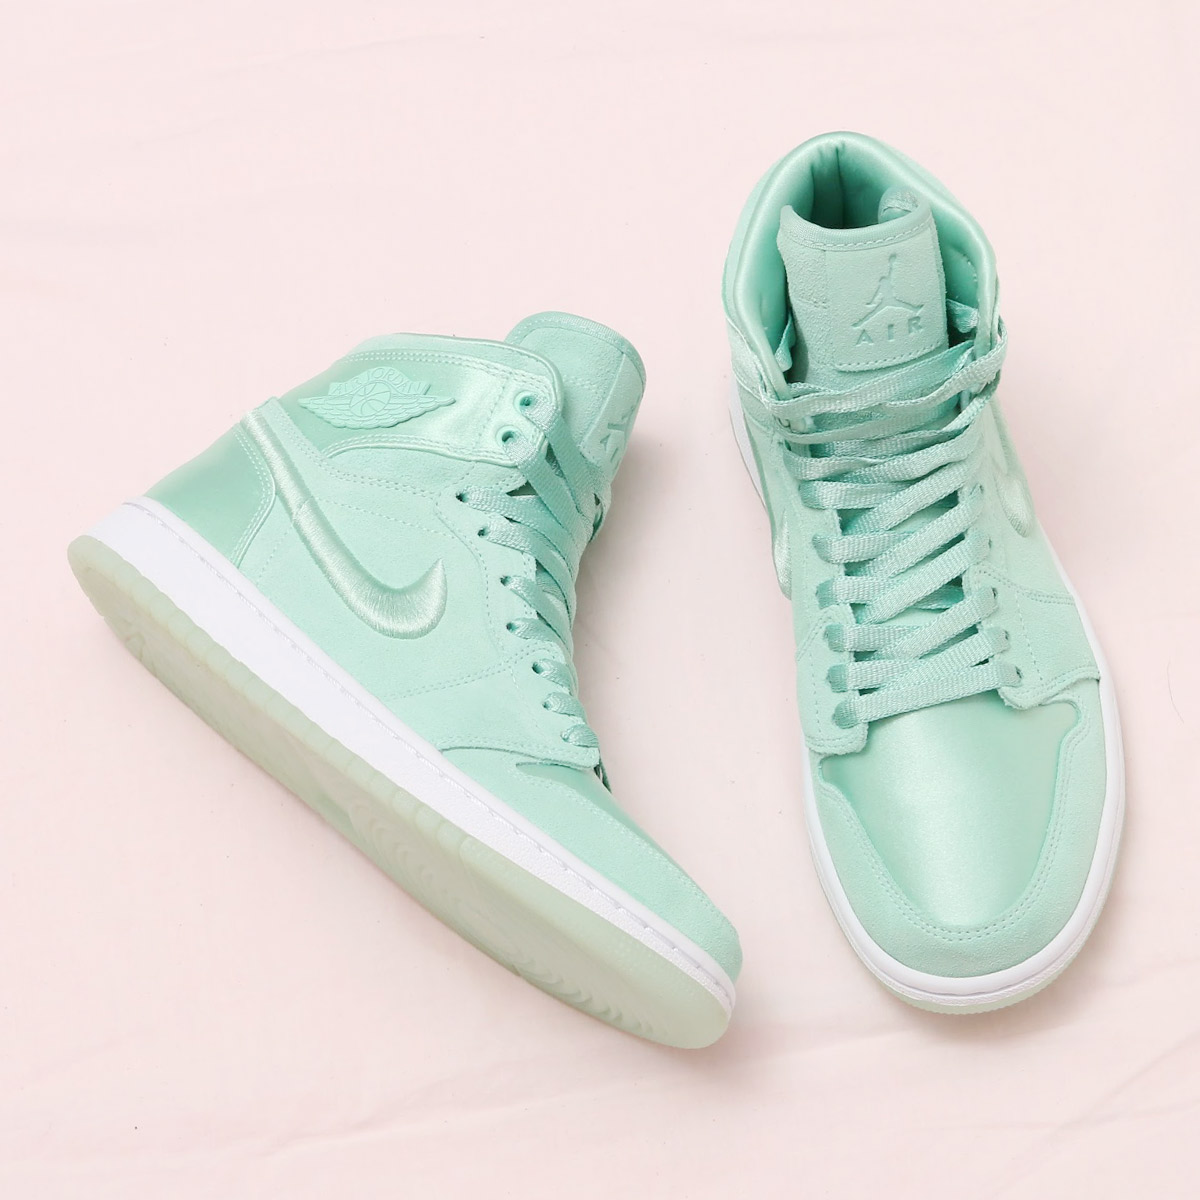 NIKE WMNS AIR JORDAN 1 RET HIGH SOH(ナイキ ウィメンズ エア ジョーダン 1 レトロ ハイ SOH)(MINT FOAM/WHITE-METALLIC GOLD)18SP-S